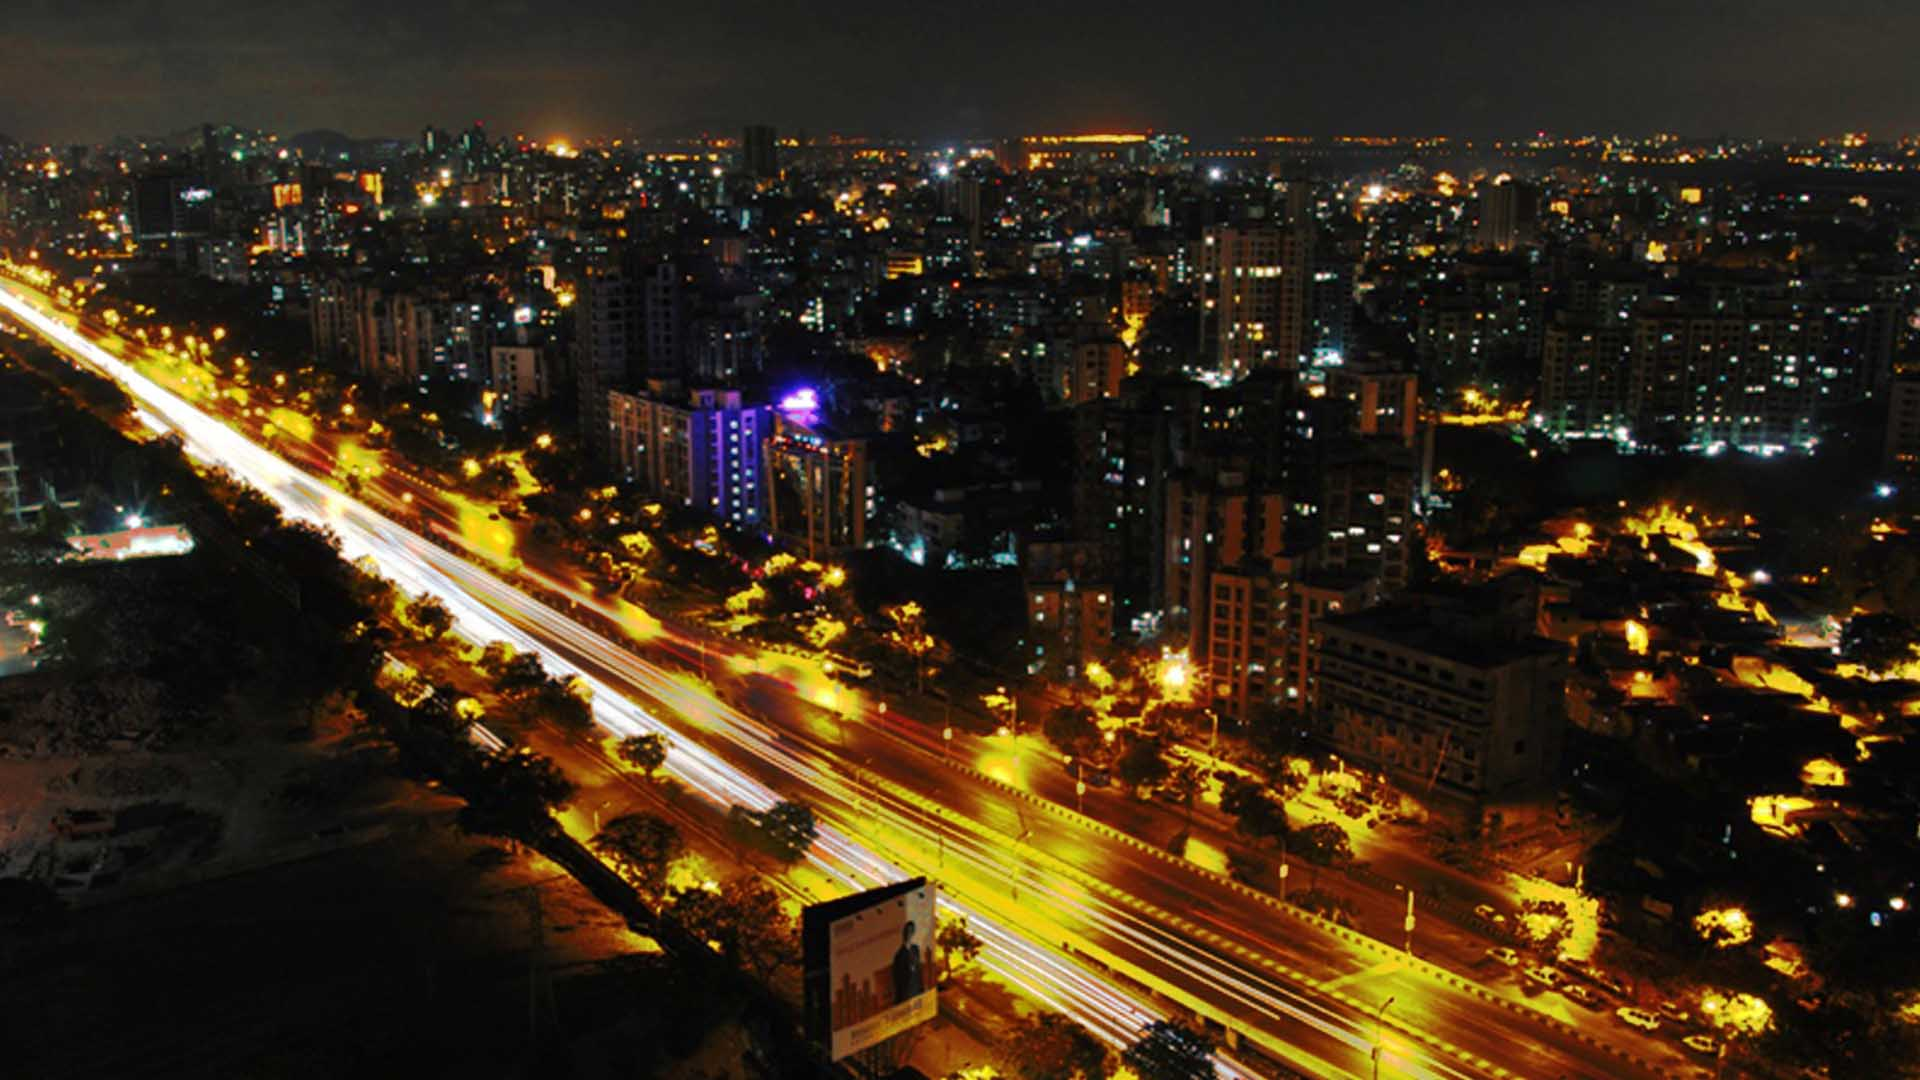 Veena Serenity- Chembur: A Good Place To Buy The Best Property